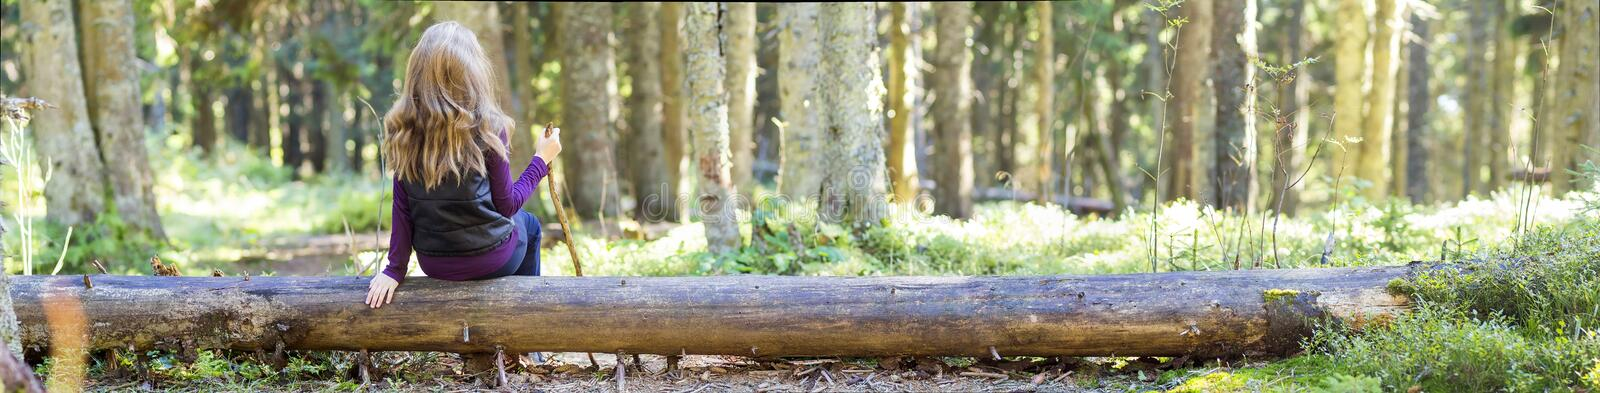 Young girl with long hair sitting on a tree log in autumn forest stock photos